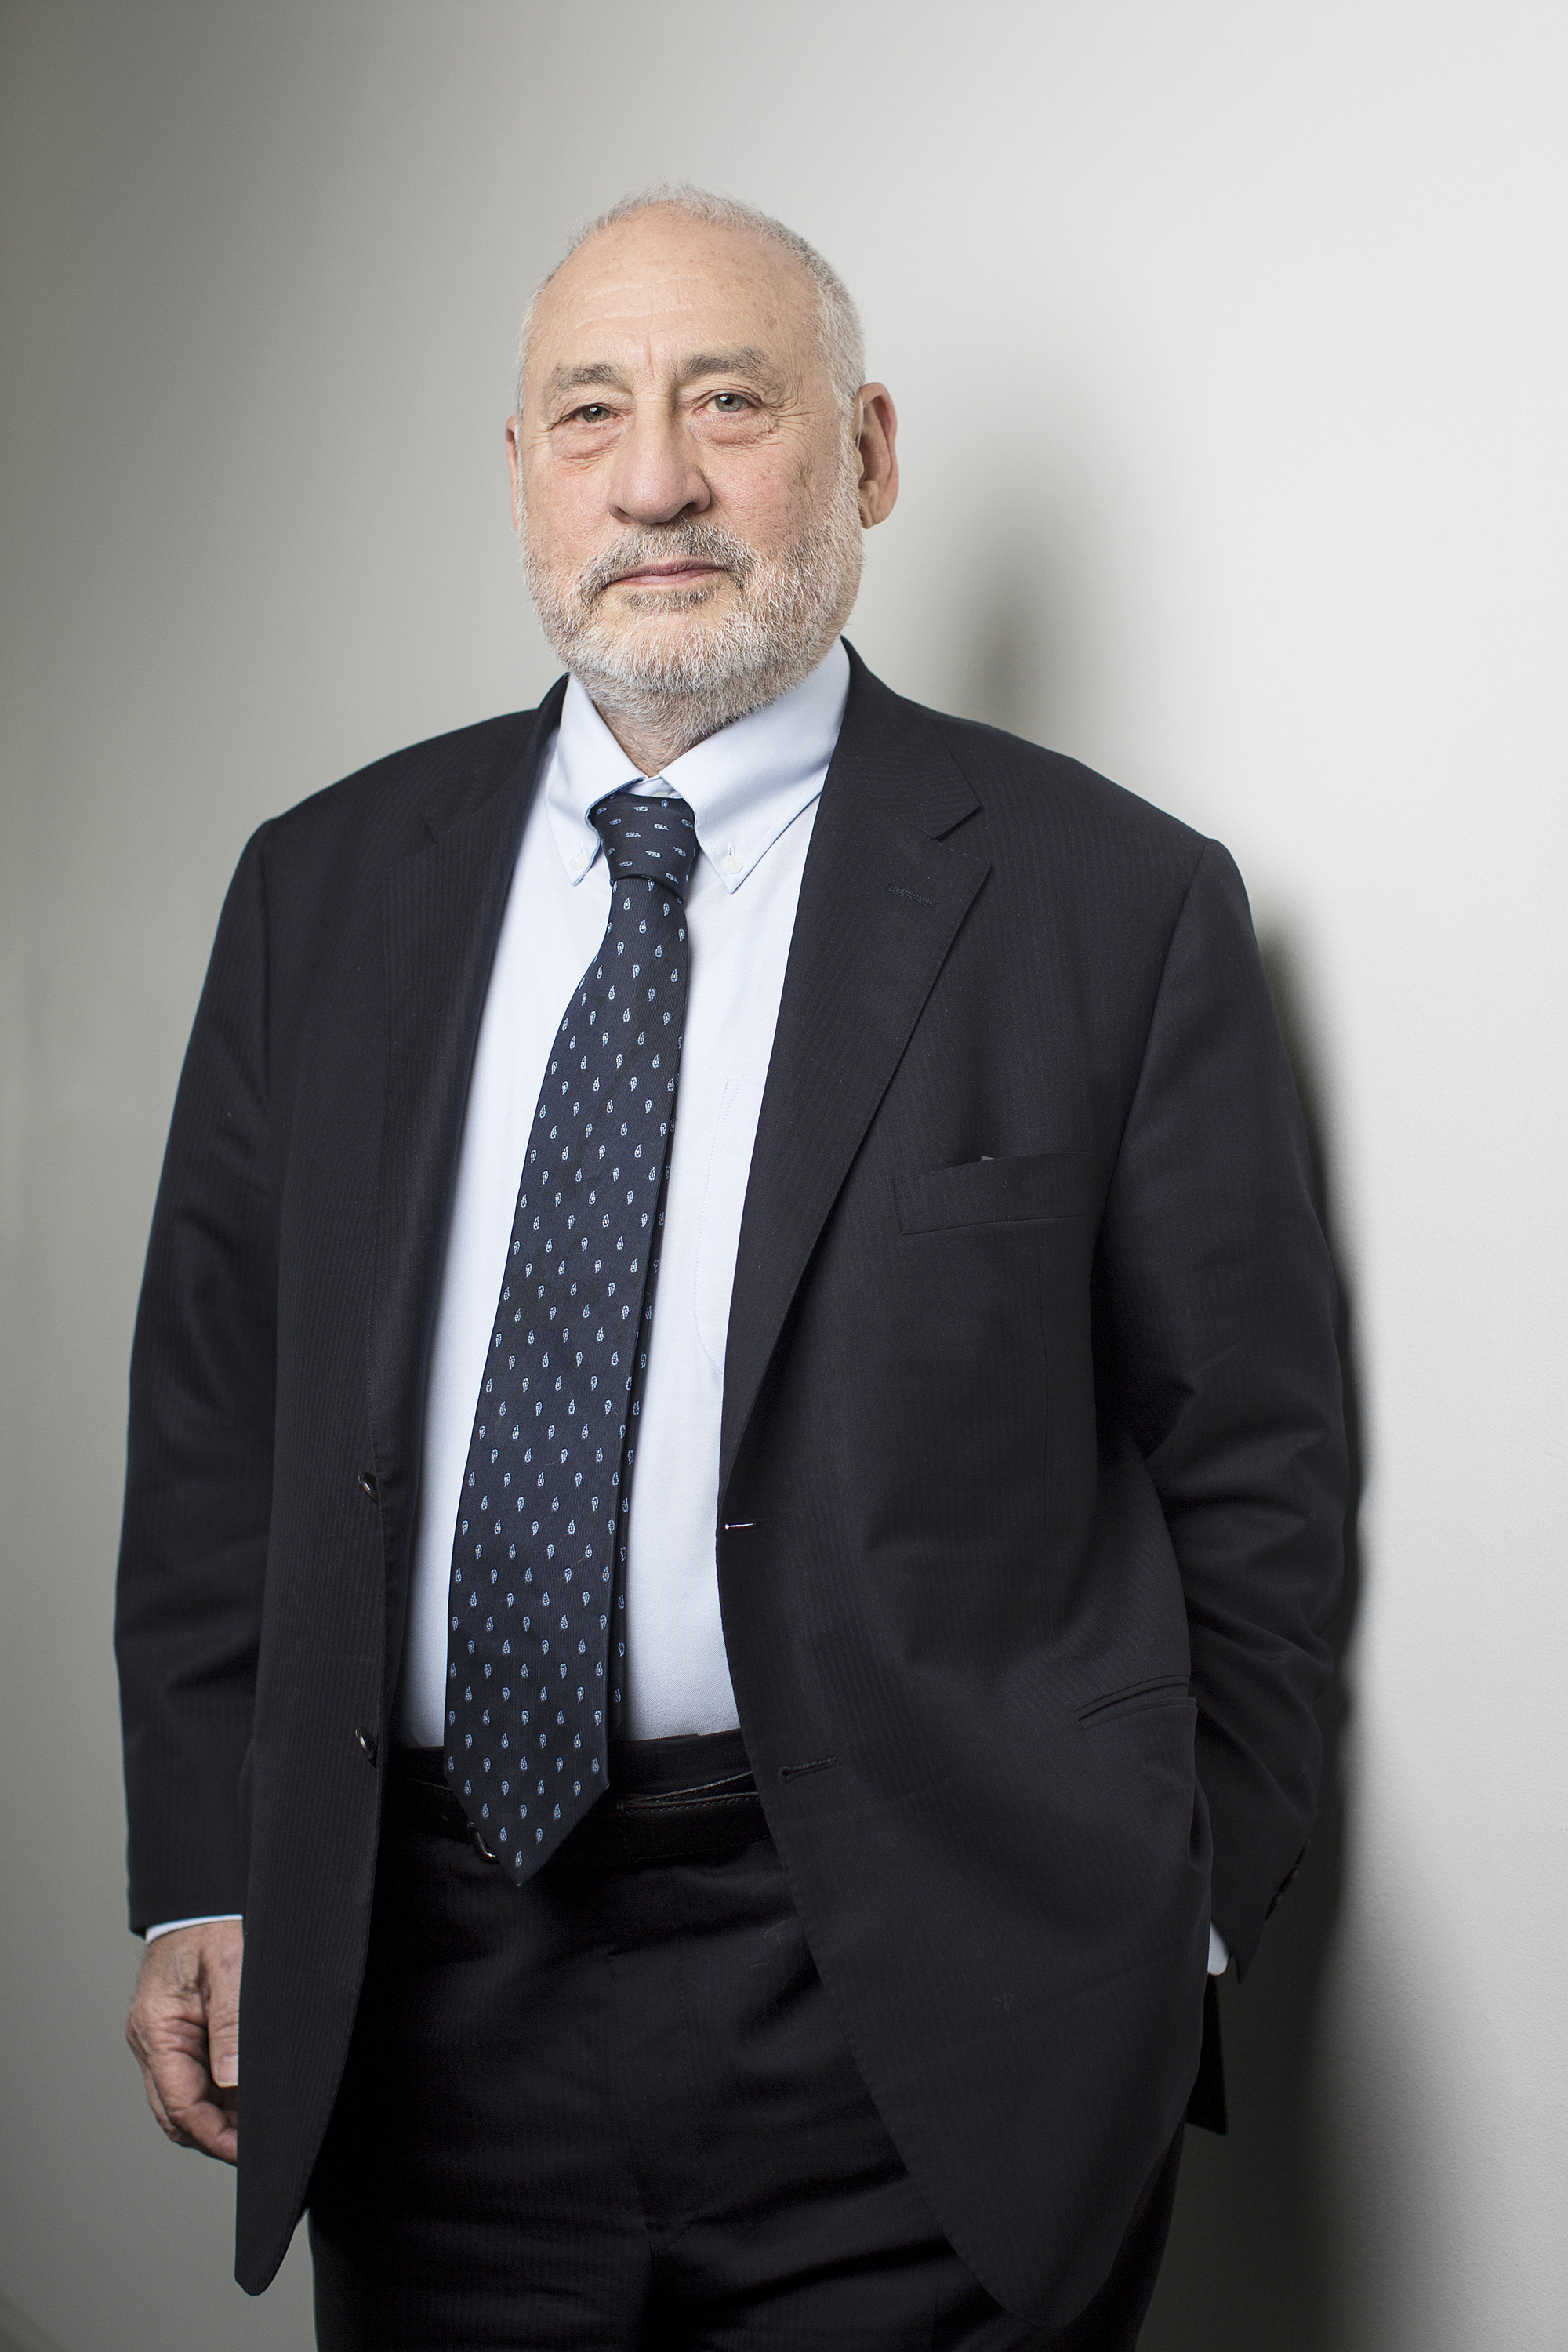 Joseph Stiglitz, Nobel prize-winning economist and professor of economics at Columbia University in London, U.K., on May 19, 2015.